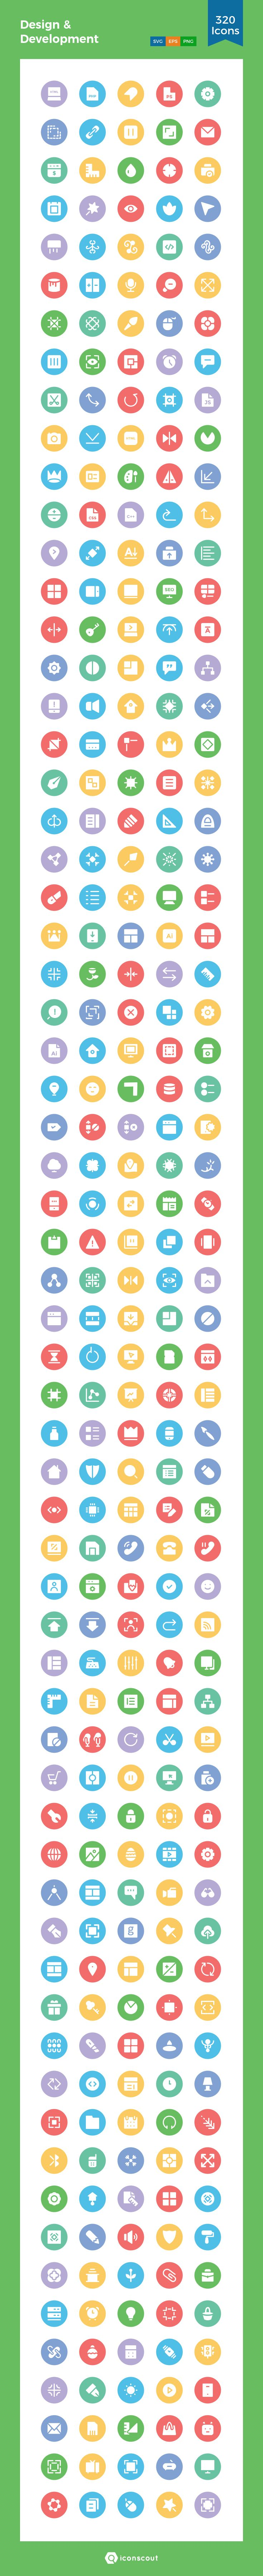 Design & Development  Icon Pack - 320 Solid Icons